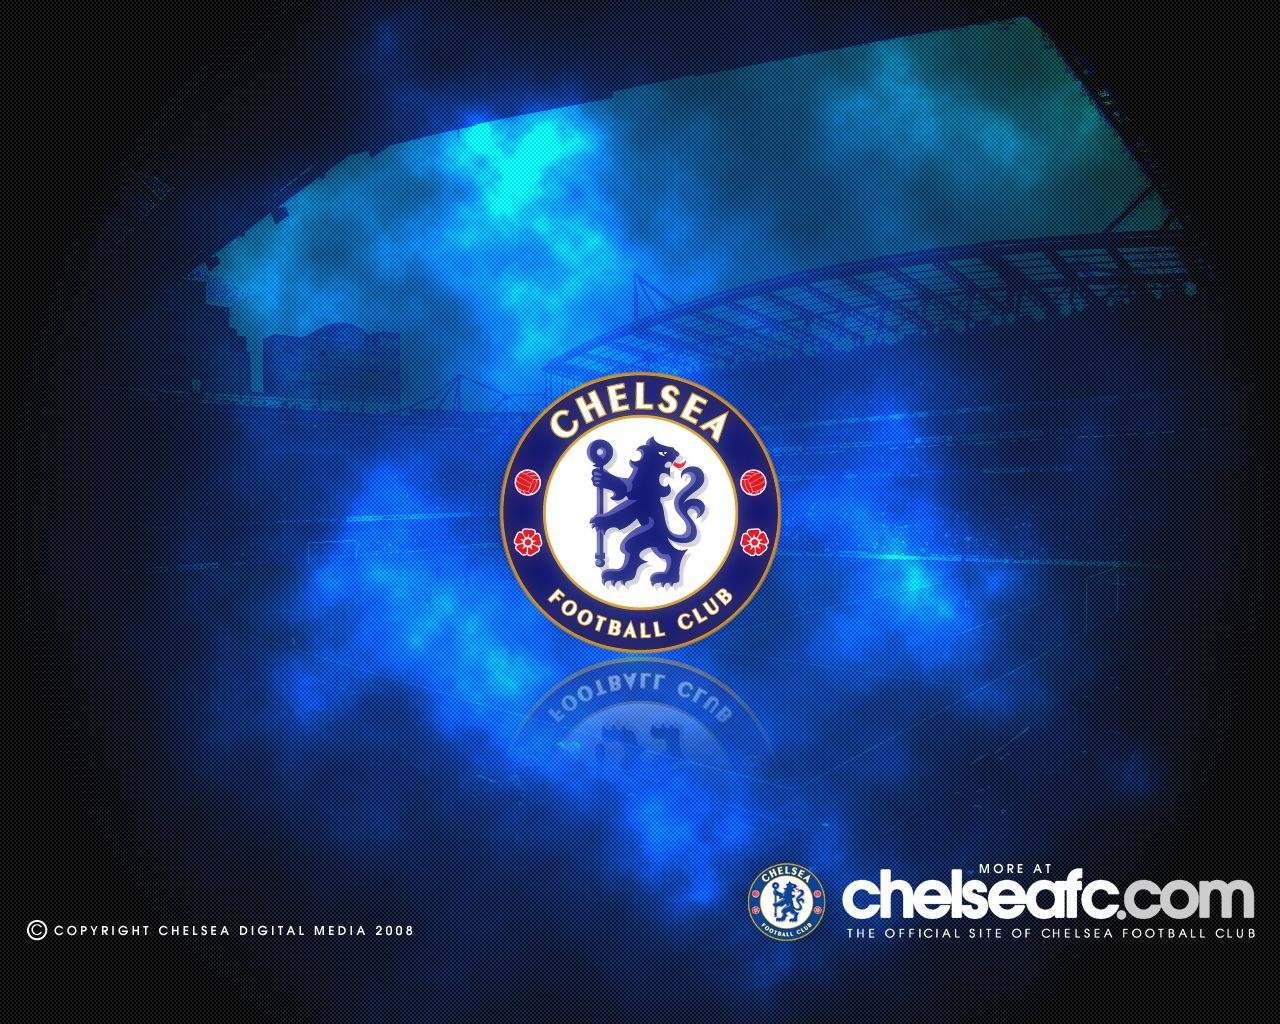 Chelsea Fc Wallpapers HD HD Wallpapers Backgrounds 1280x1024